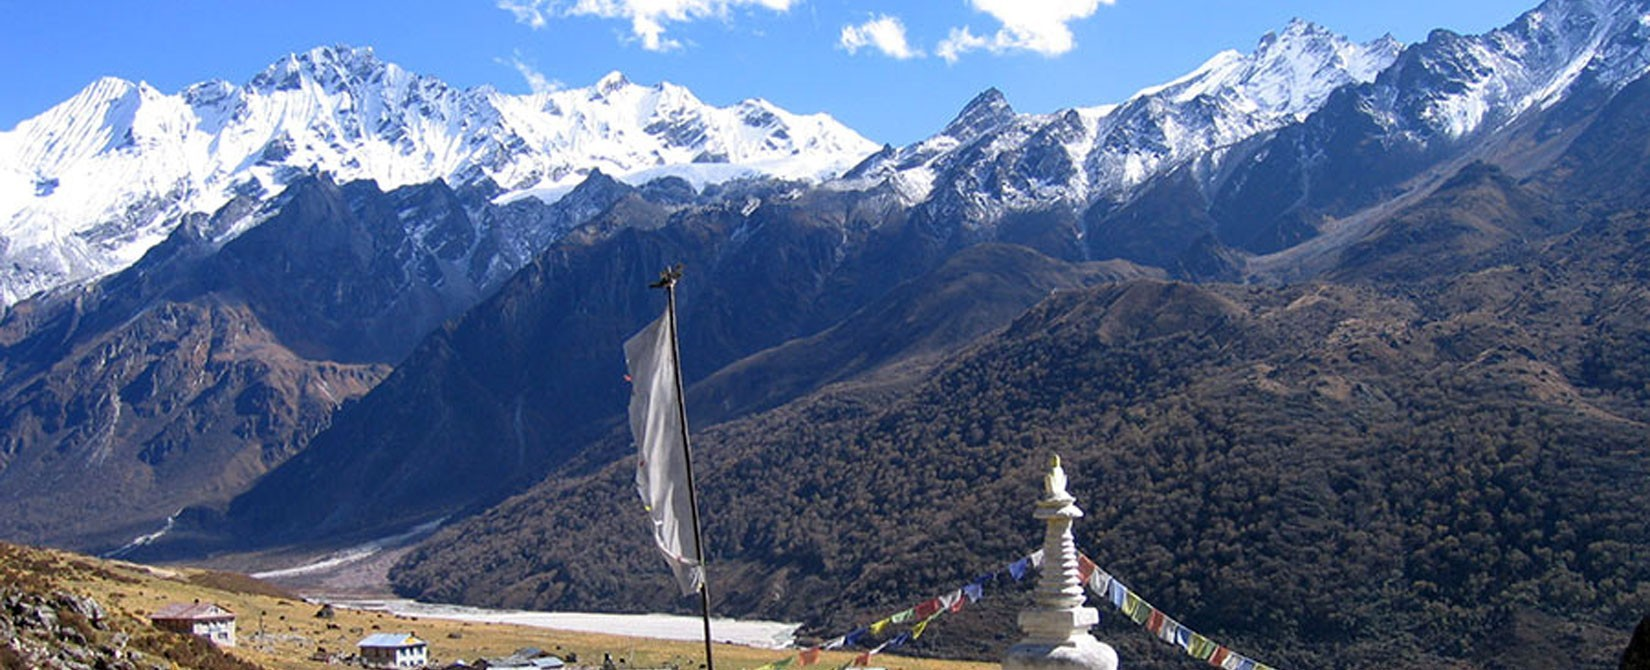 Breathtaking Views of Mountains from the village of Humla